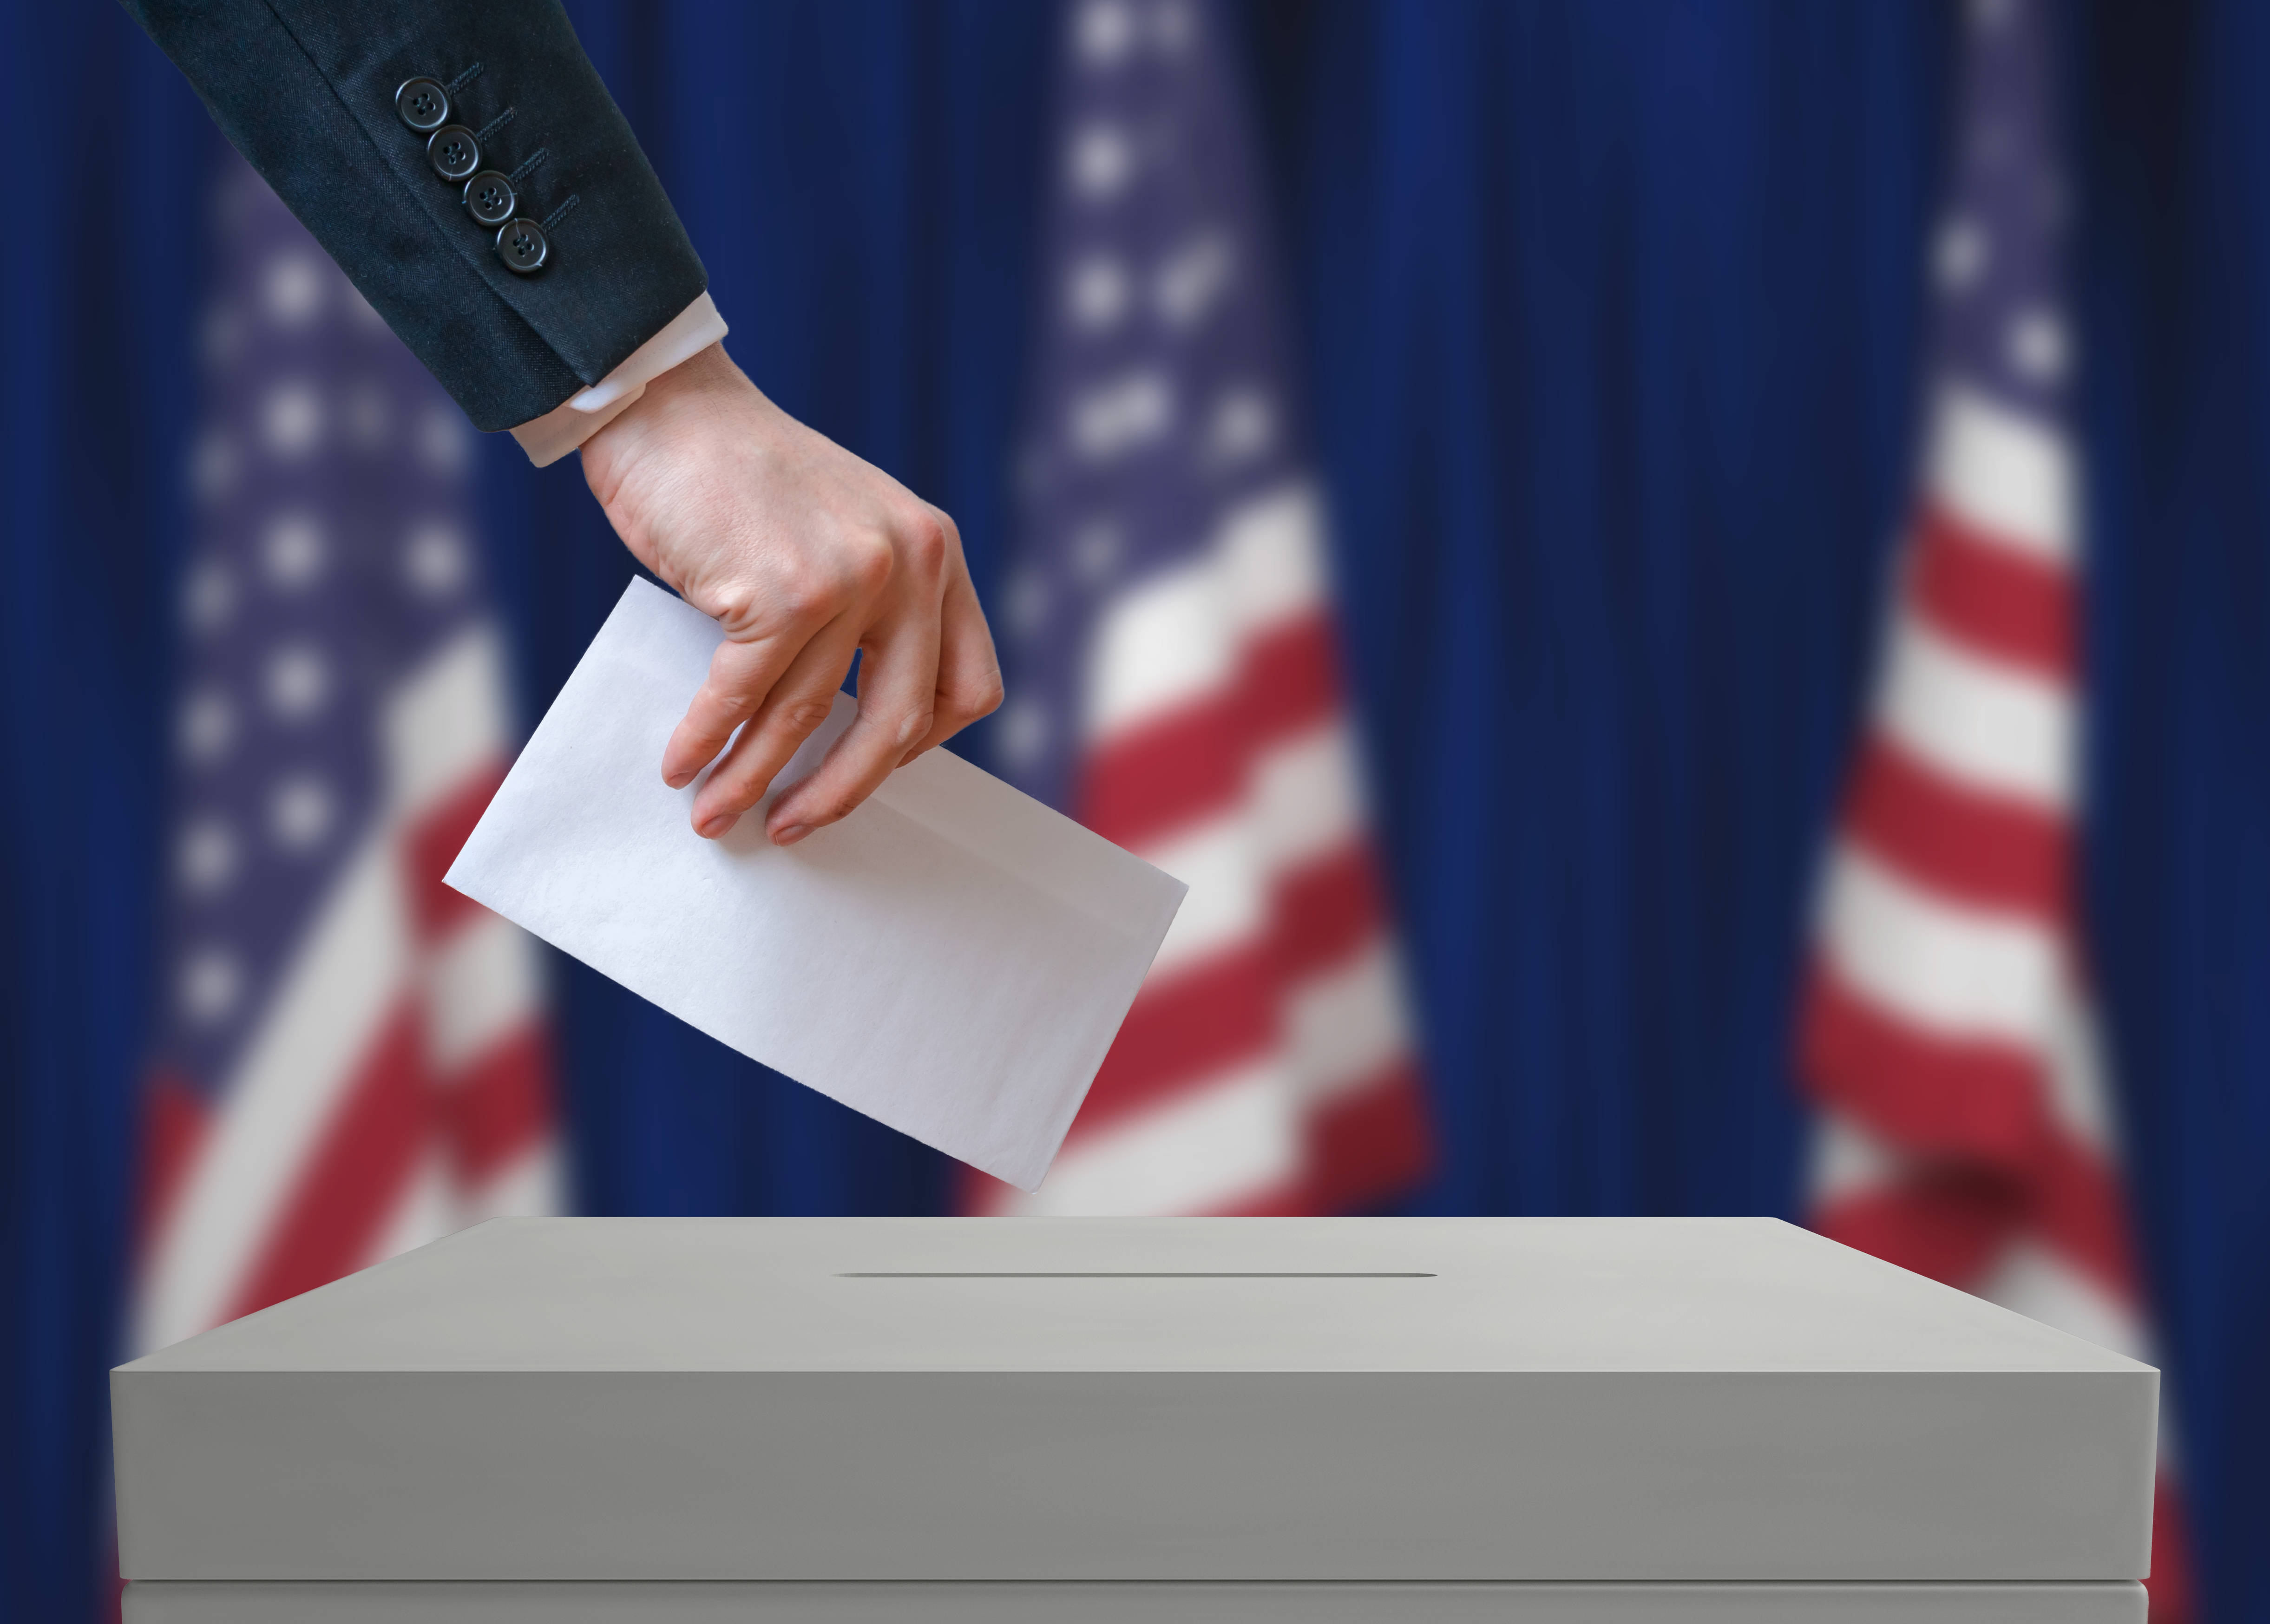 Newcomers Take Seats In Spotswood's Local Elections